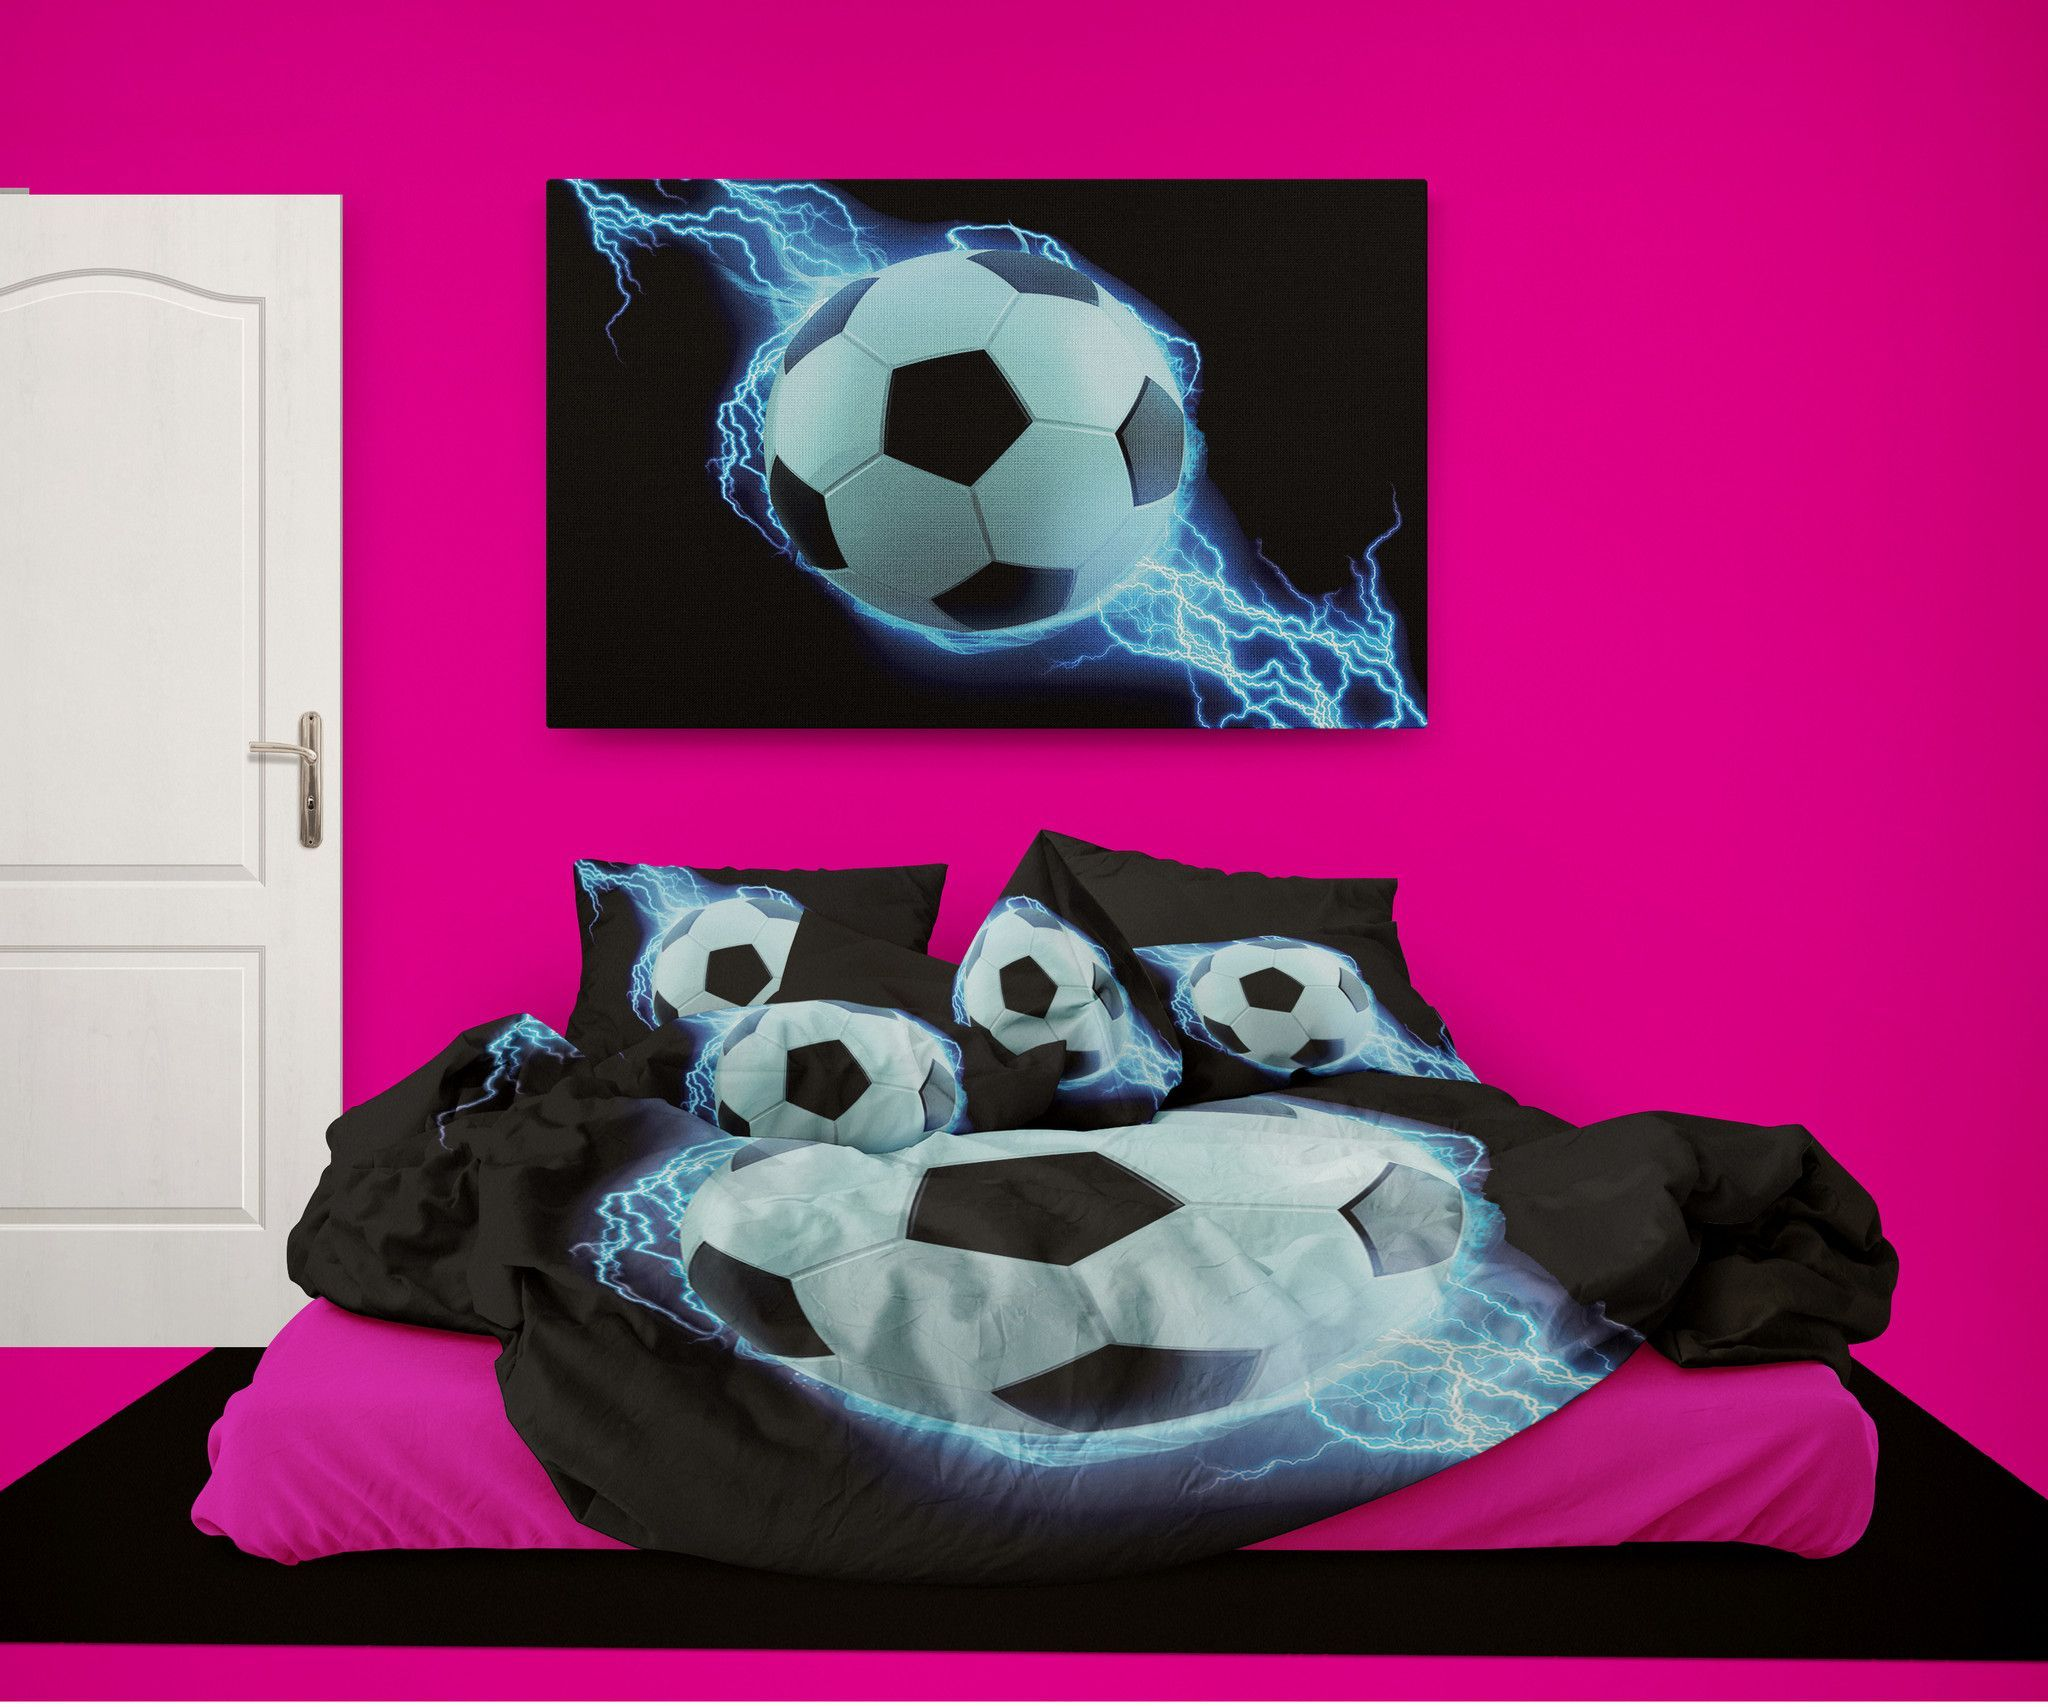 Girls Soccer Comforter From Extremely Stoked Soccer Bedding Collection